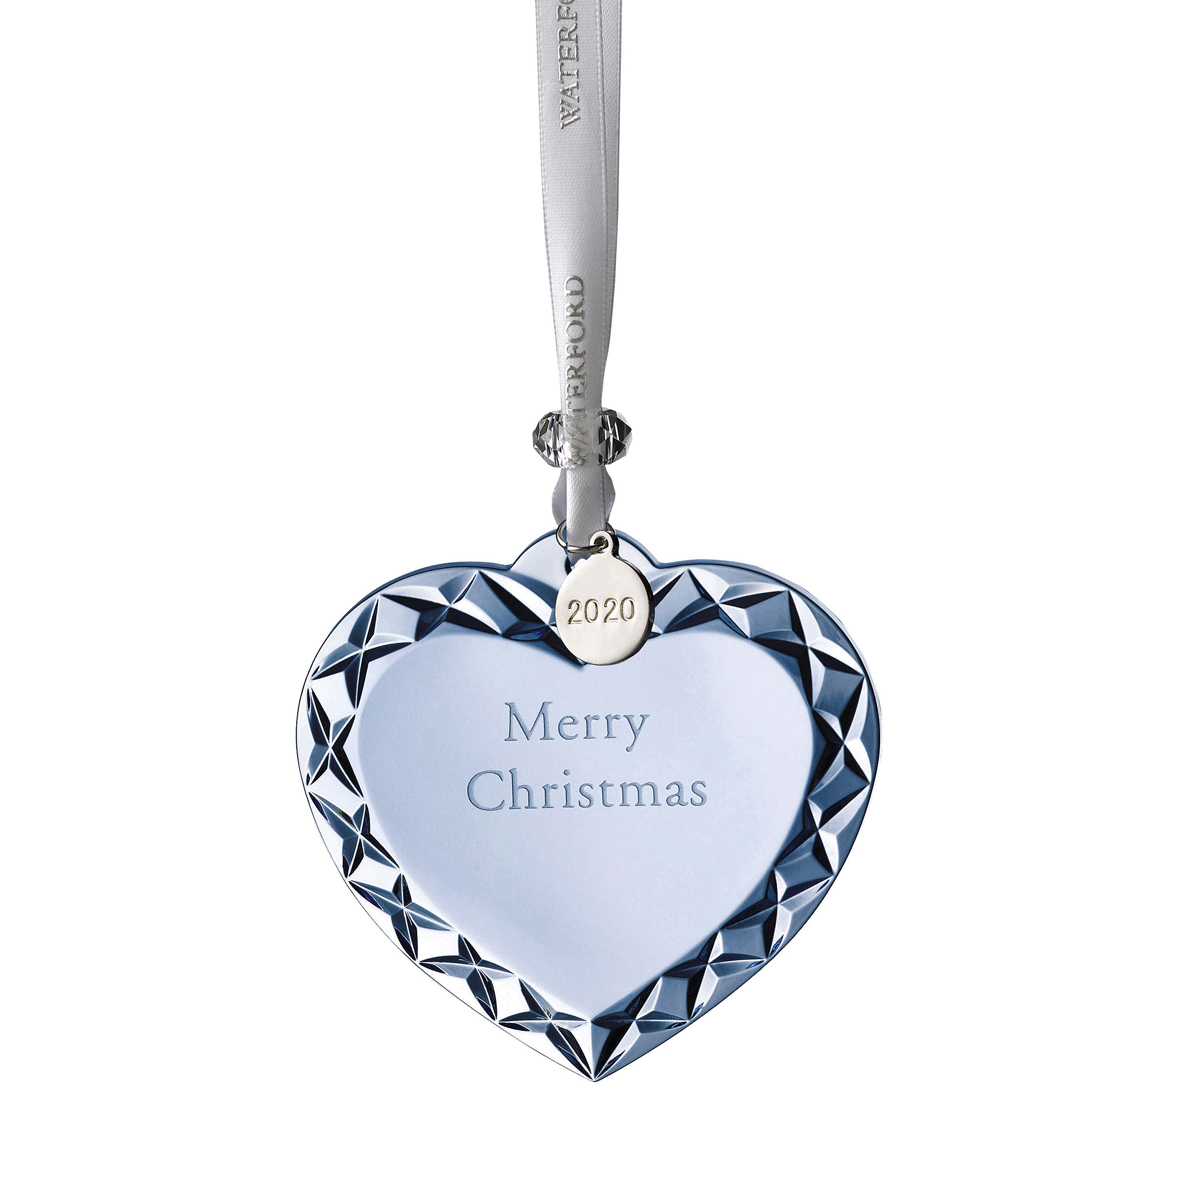 Waterford 2020 Heart Ornament Merry Christmas Topaz Ice